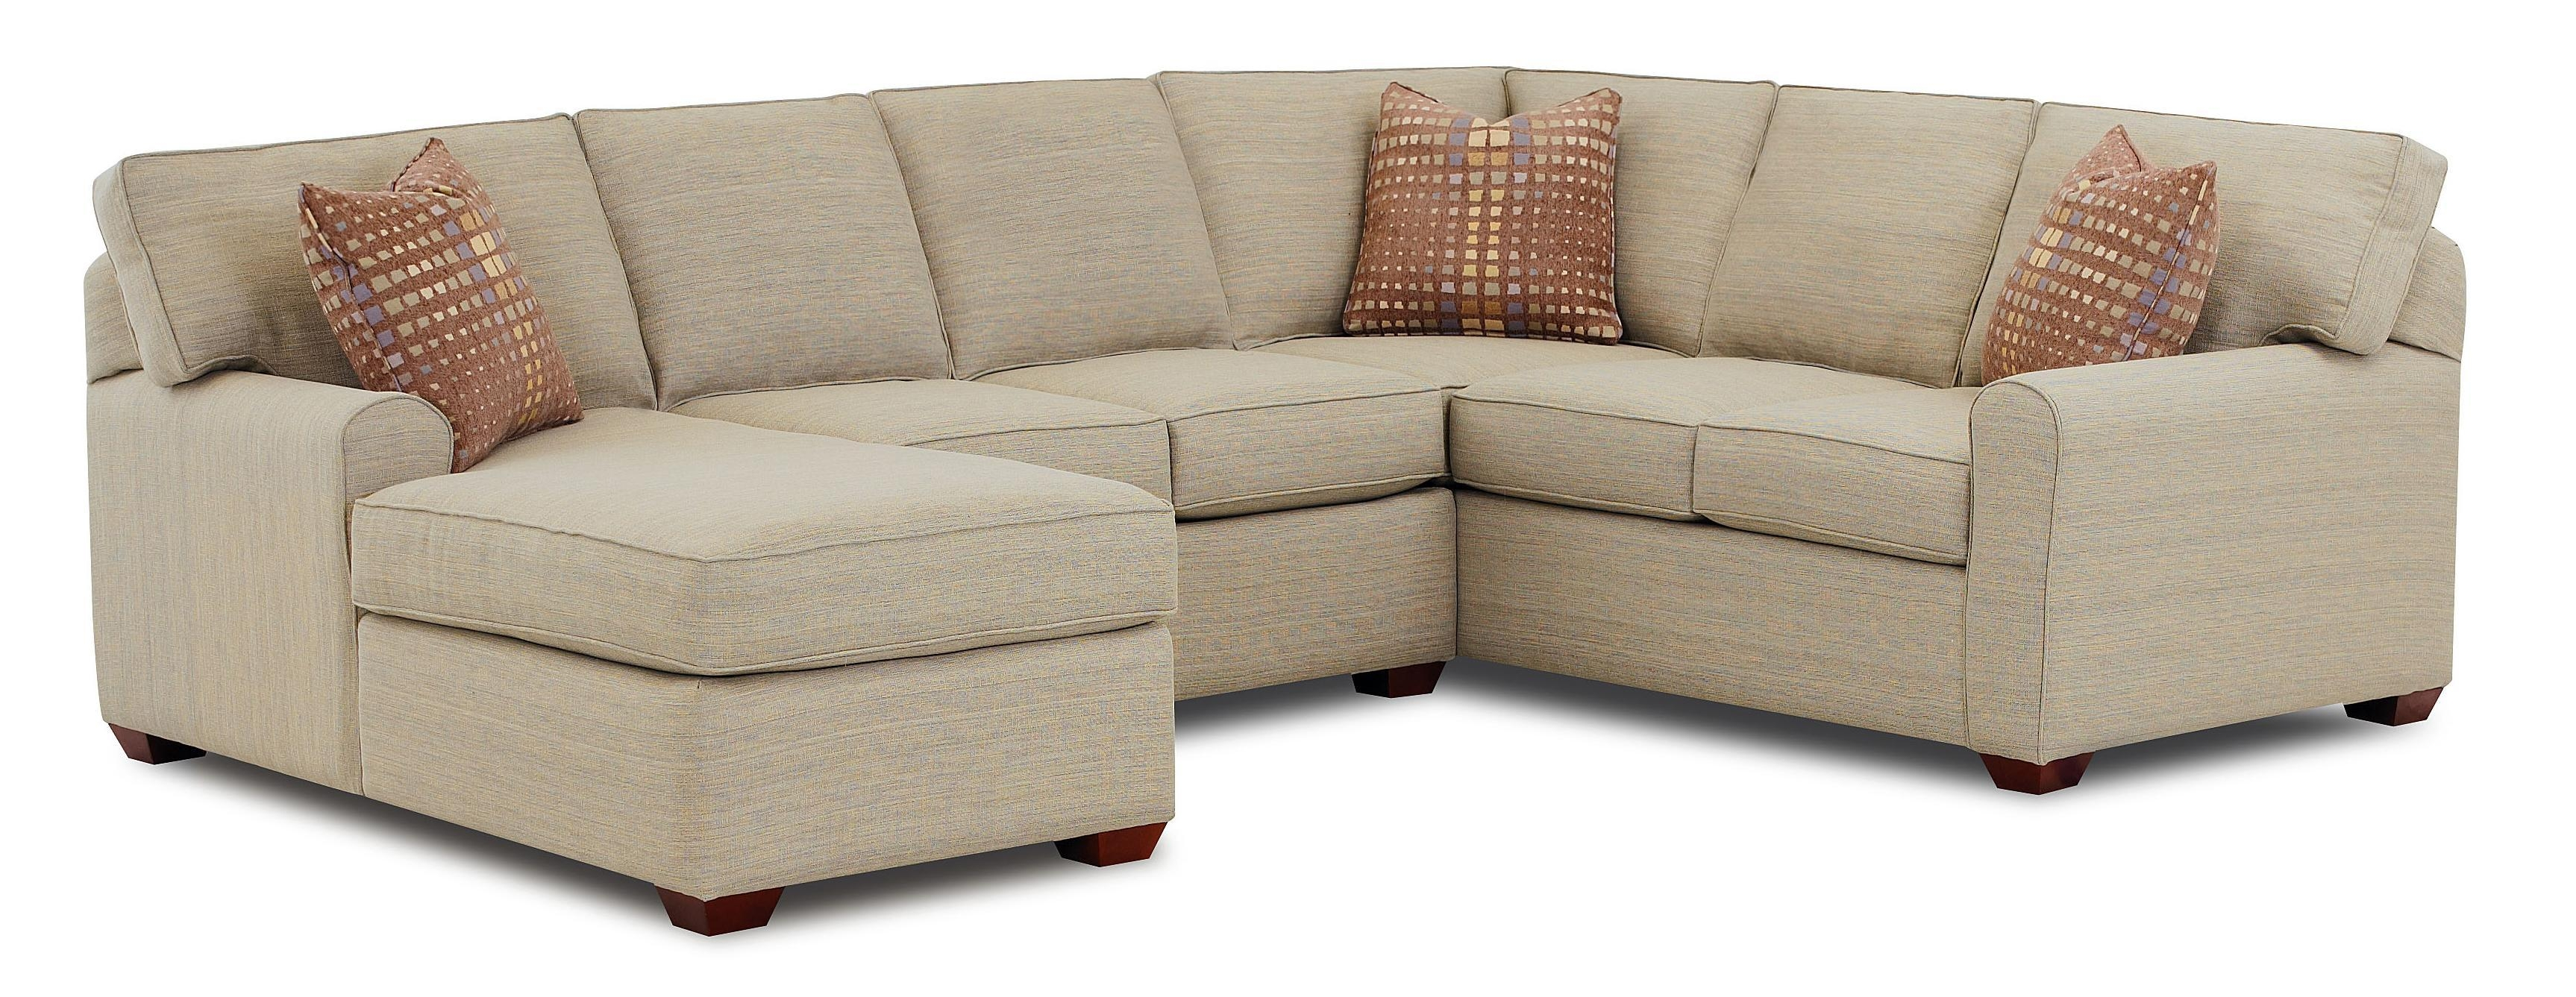 Sofas Center : Sectional Sofas With Chaise Cuddler And Throughout Broyhill Sectional Sofas (View 14 of 15)